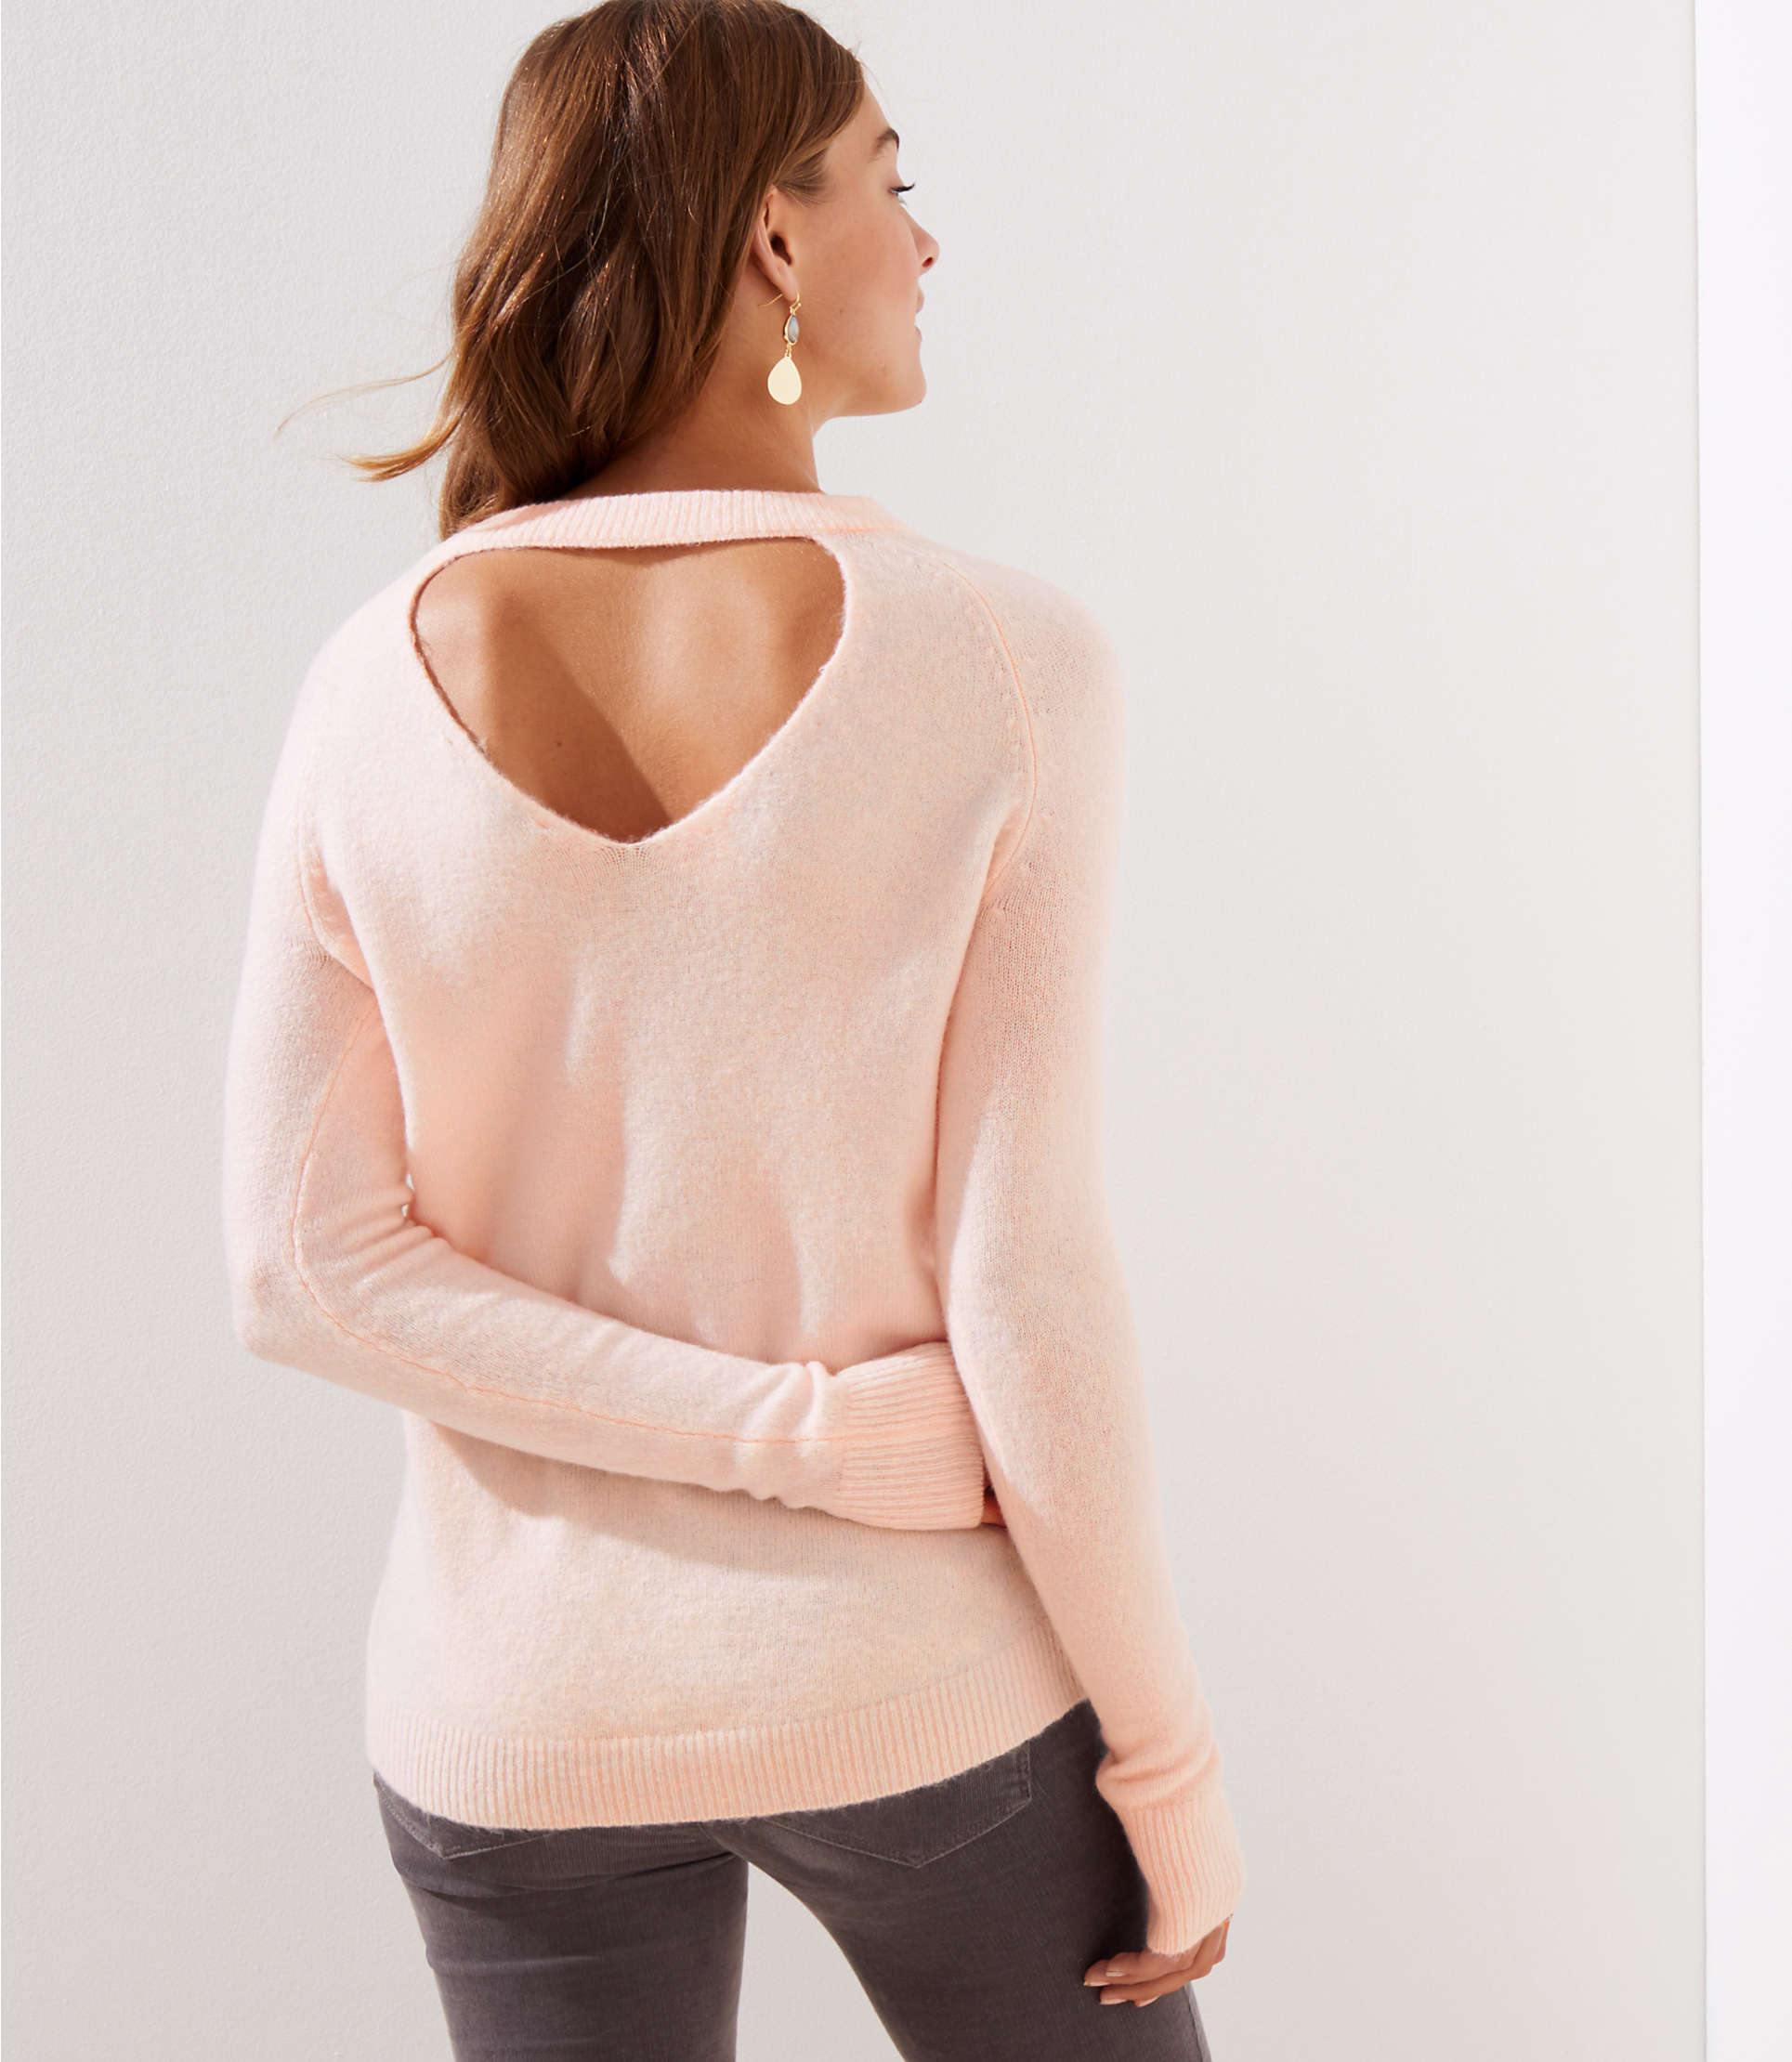 Love this sweater with the pretty back detail. Great for messy bun days!